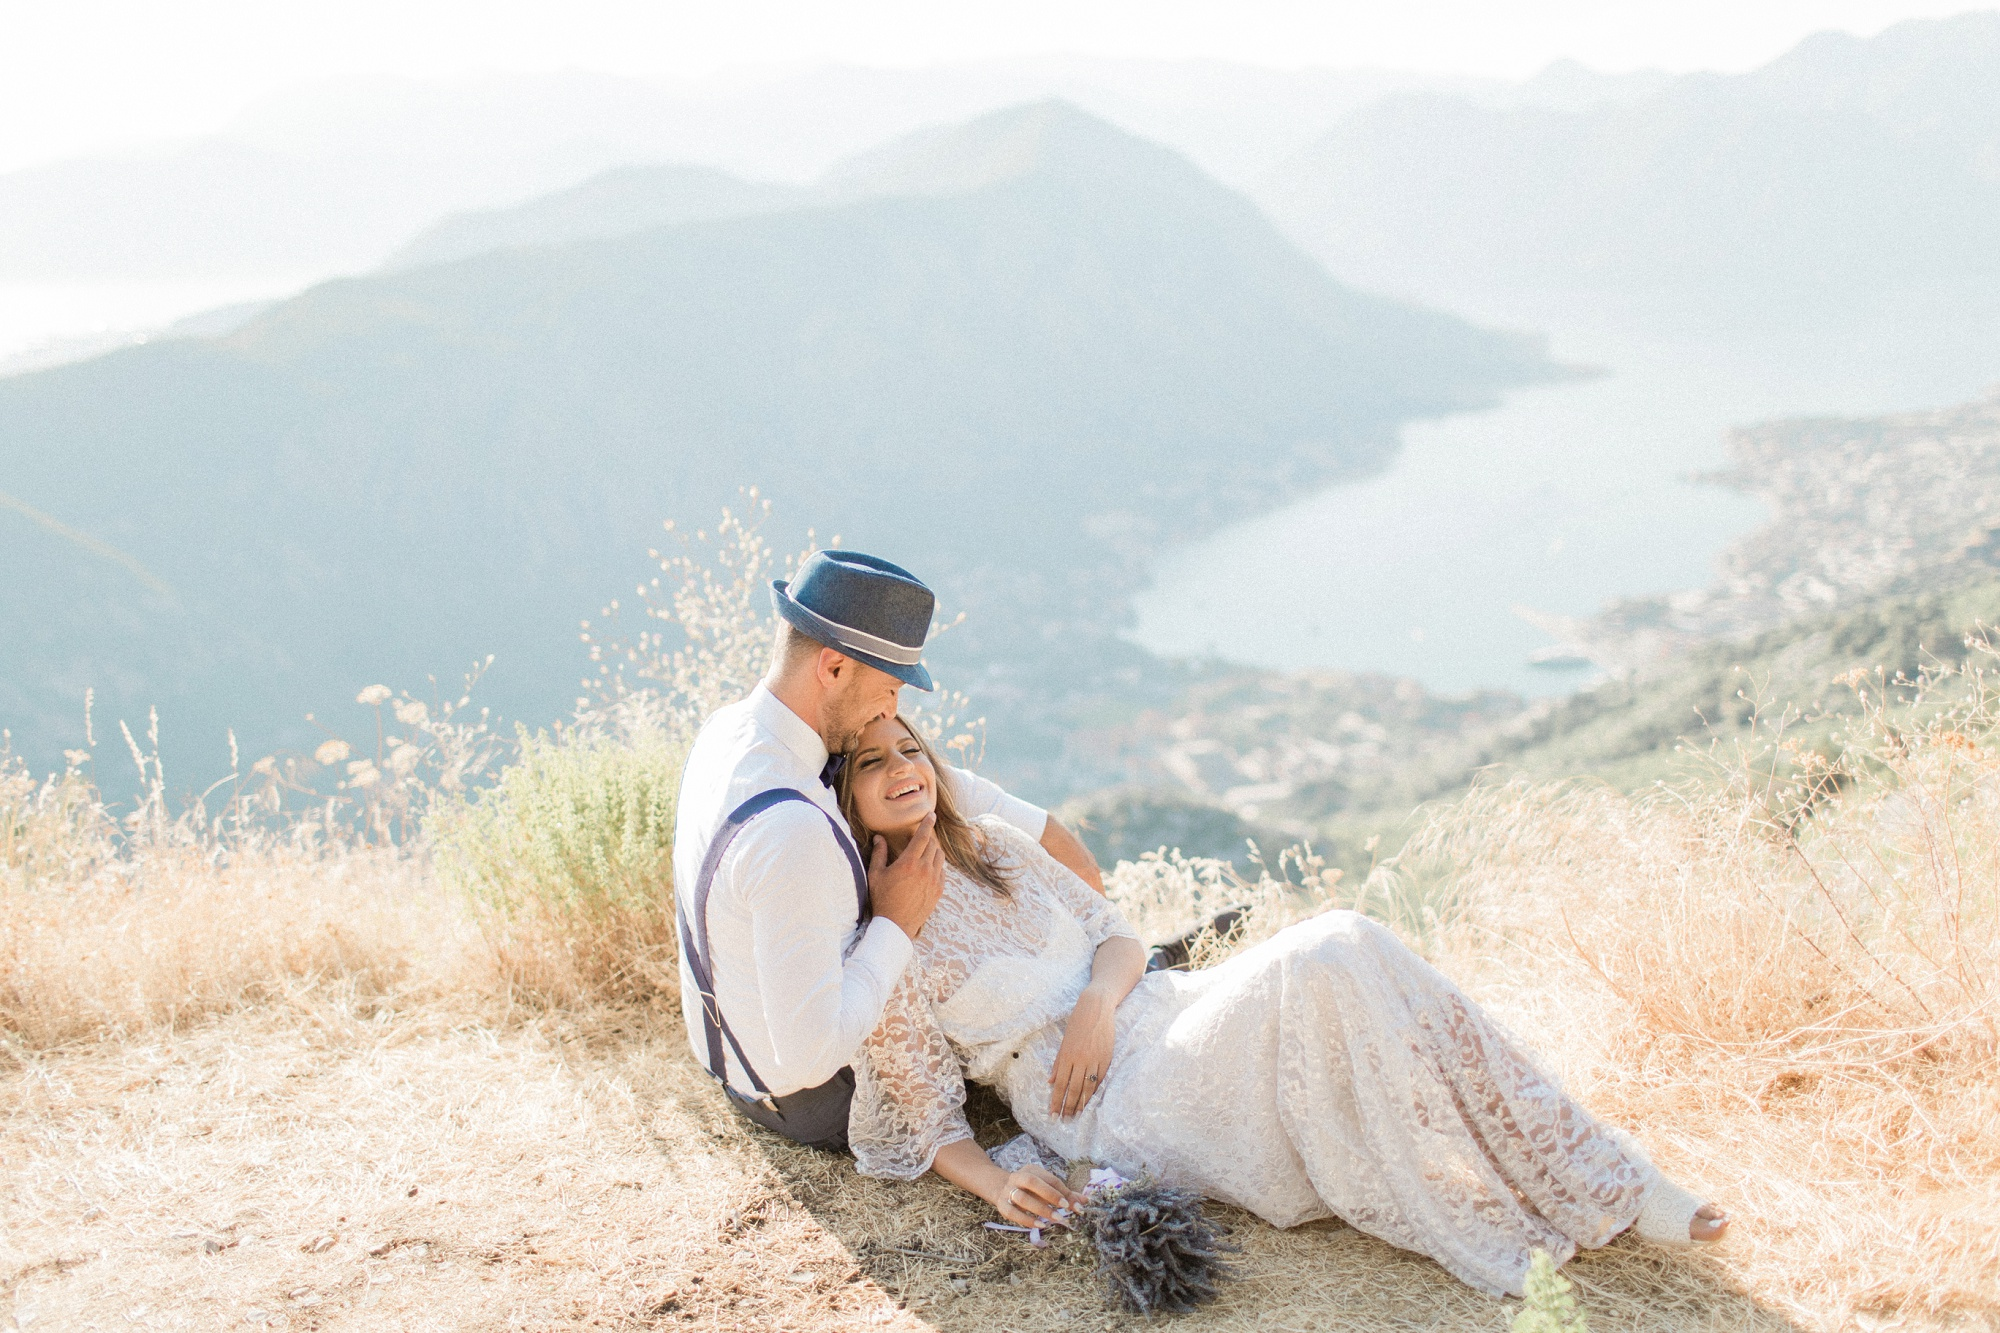 Albania Wedding Photographer - Anjeza Dyrmishi_0440.jpg